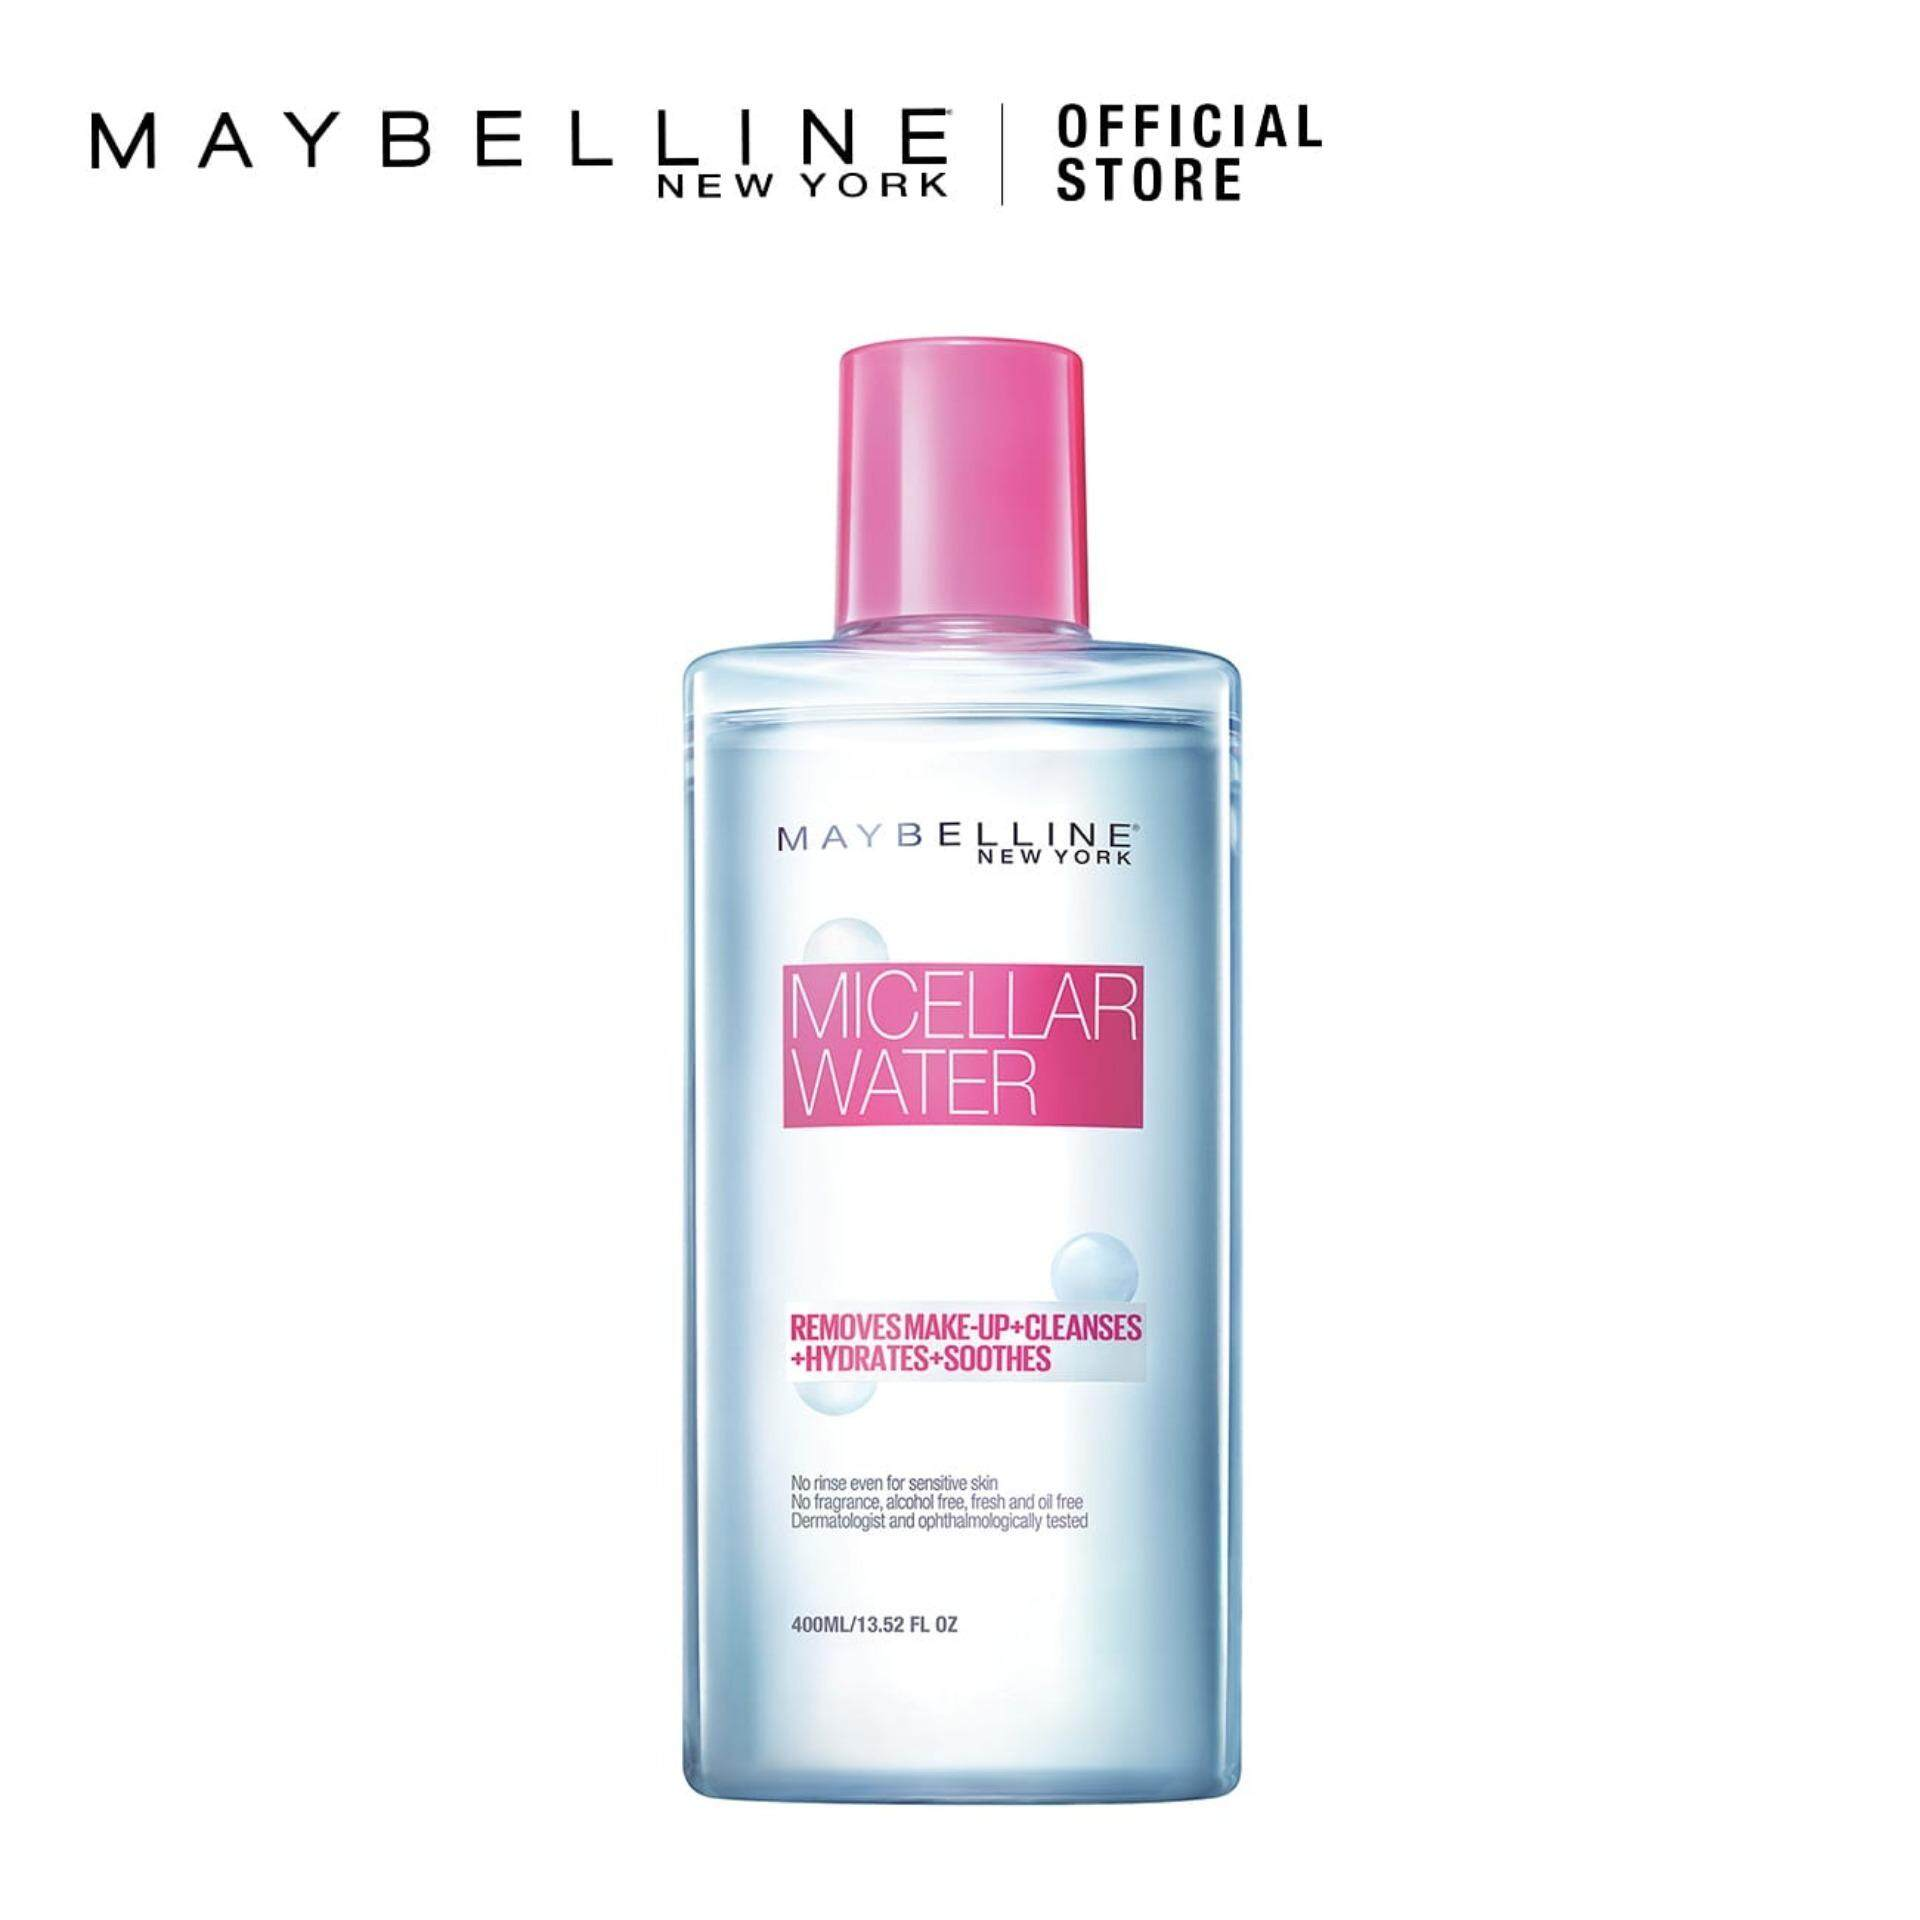 Maybelline Health Beauty Makeup Price In Malaysia Best Two Cake Bedak 2 Pcs Micellar Water 3 1 Remover 200ml